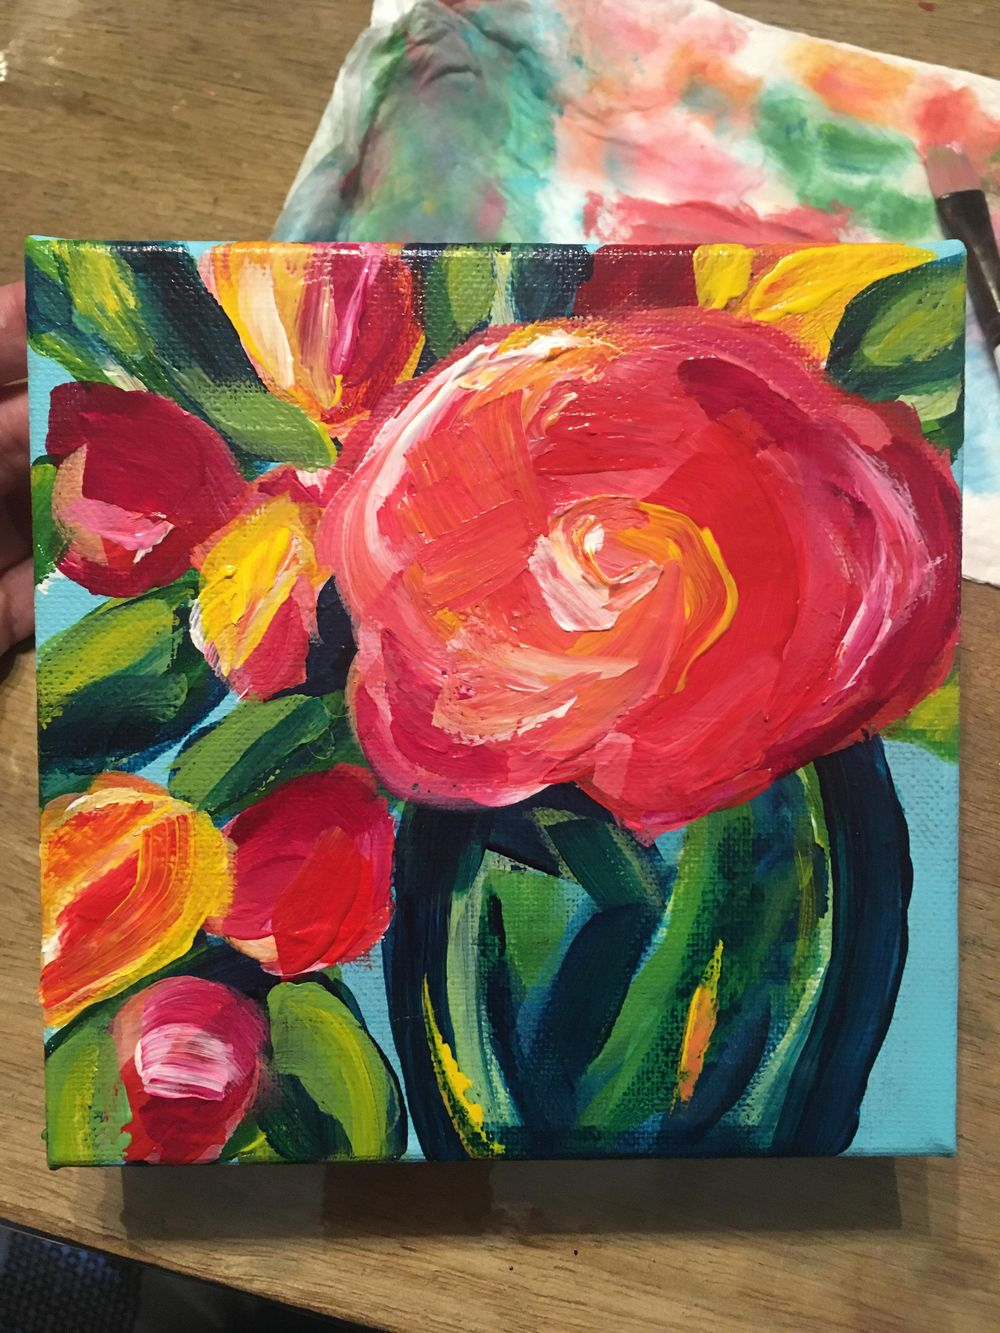 Abstract Floral - image 2 - student project